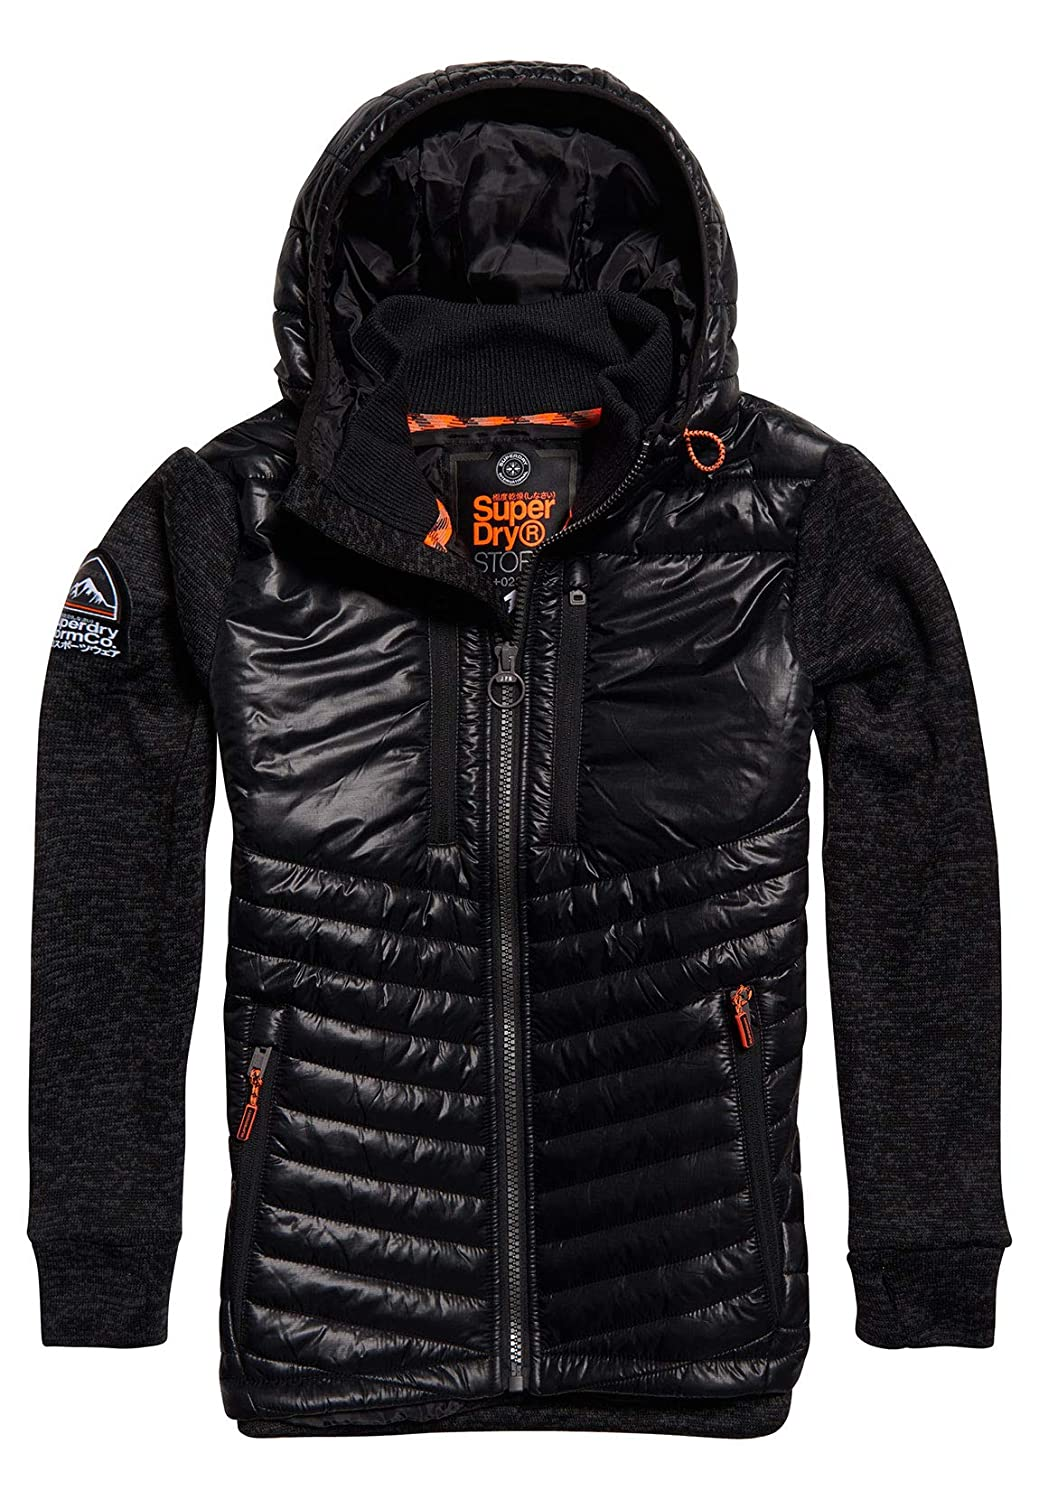 Superdry Men's Storm Hybrid Jacket, Black